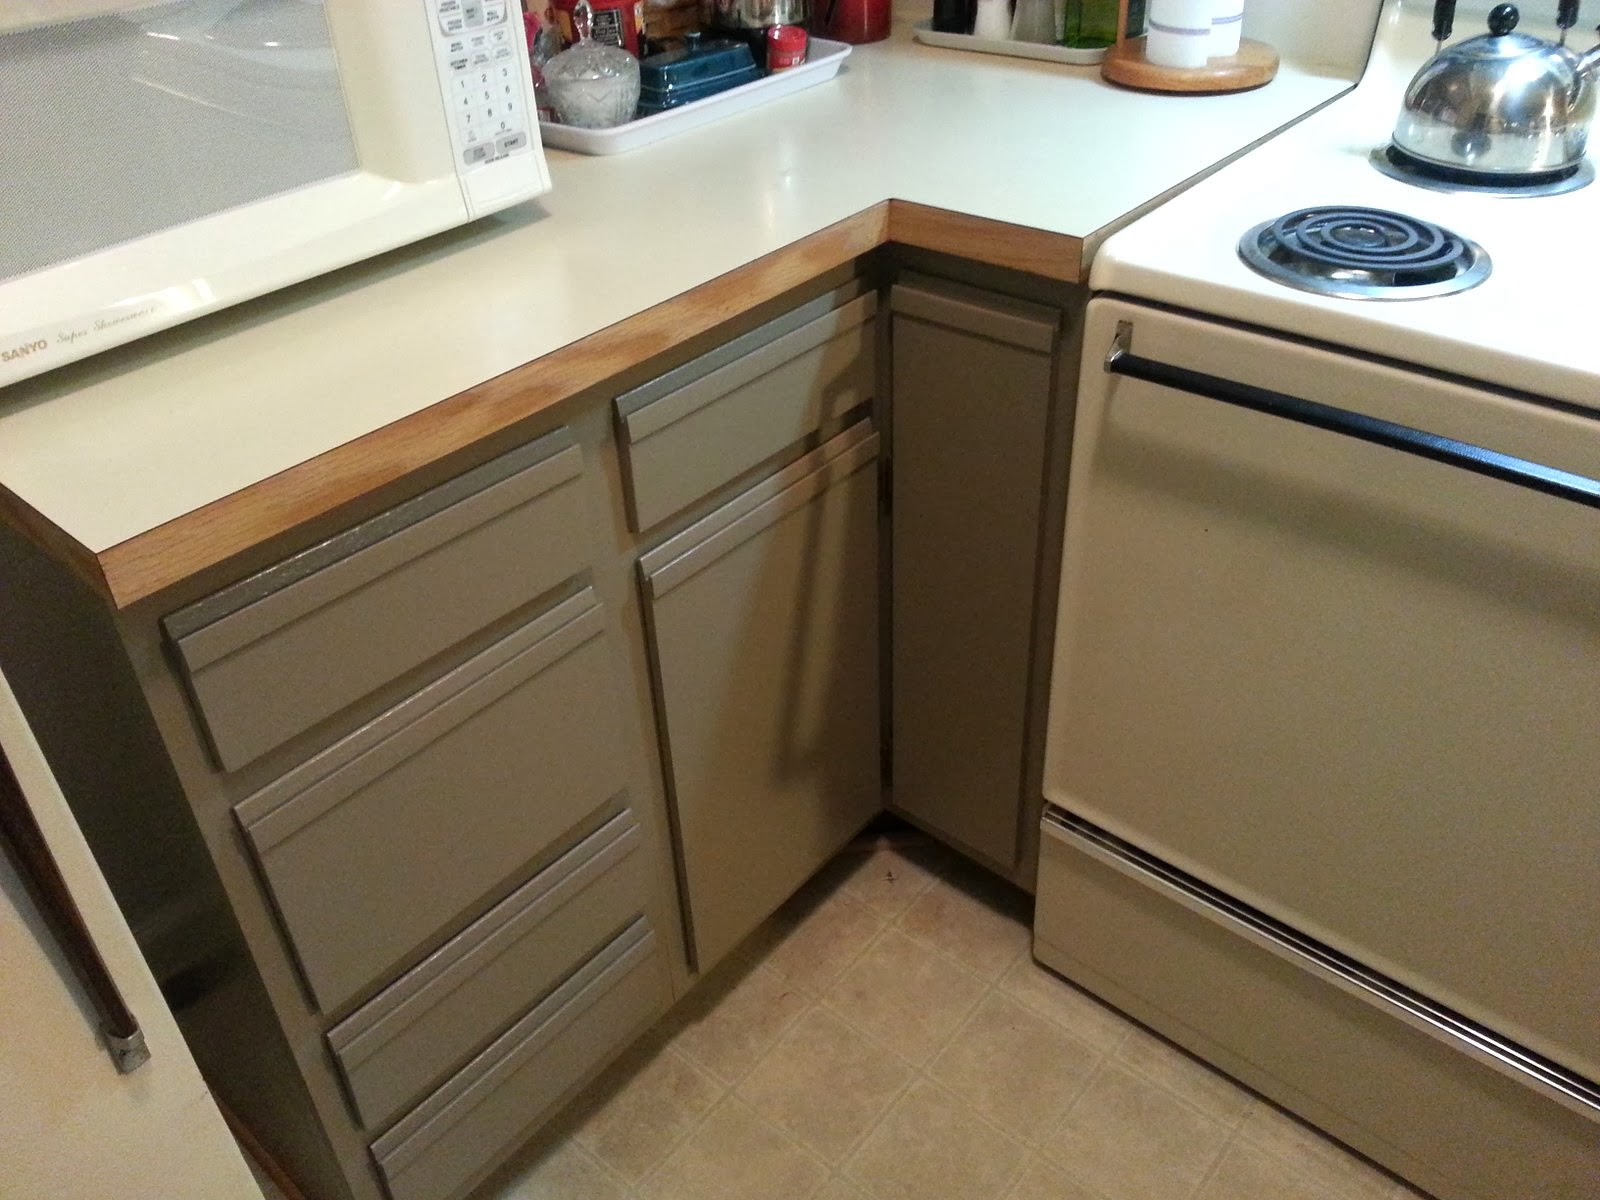 How To Update Laminate Kitchen Cabinets Foobella Designs Painting Laminate Kitchen Cabinets Done